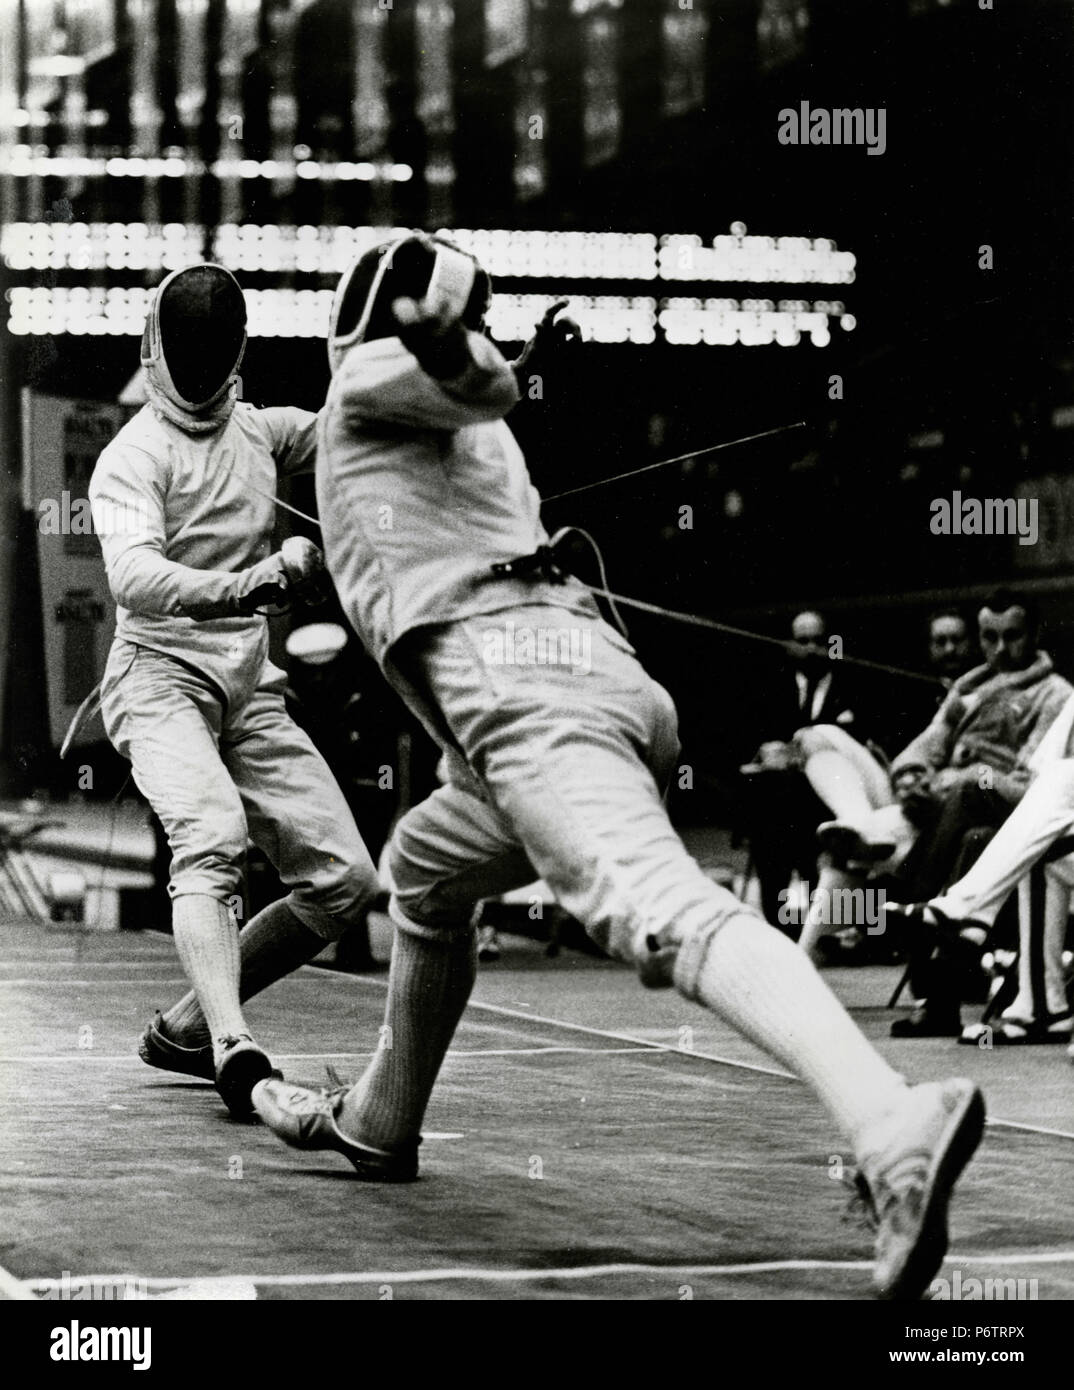 Fancing match during the Olympics, Mexico 68 - Stock Image